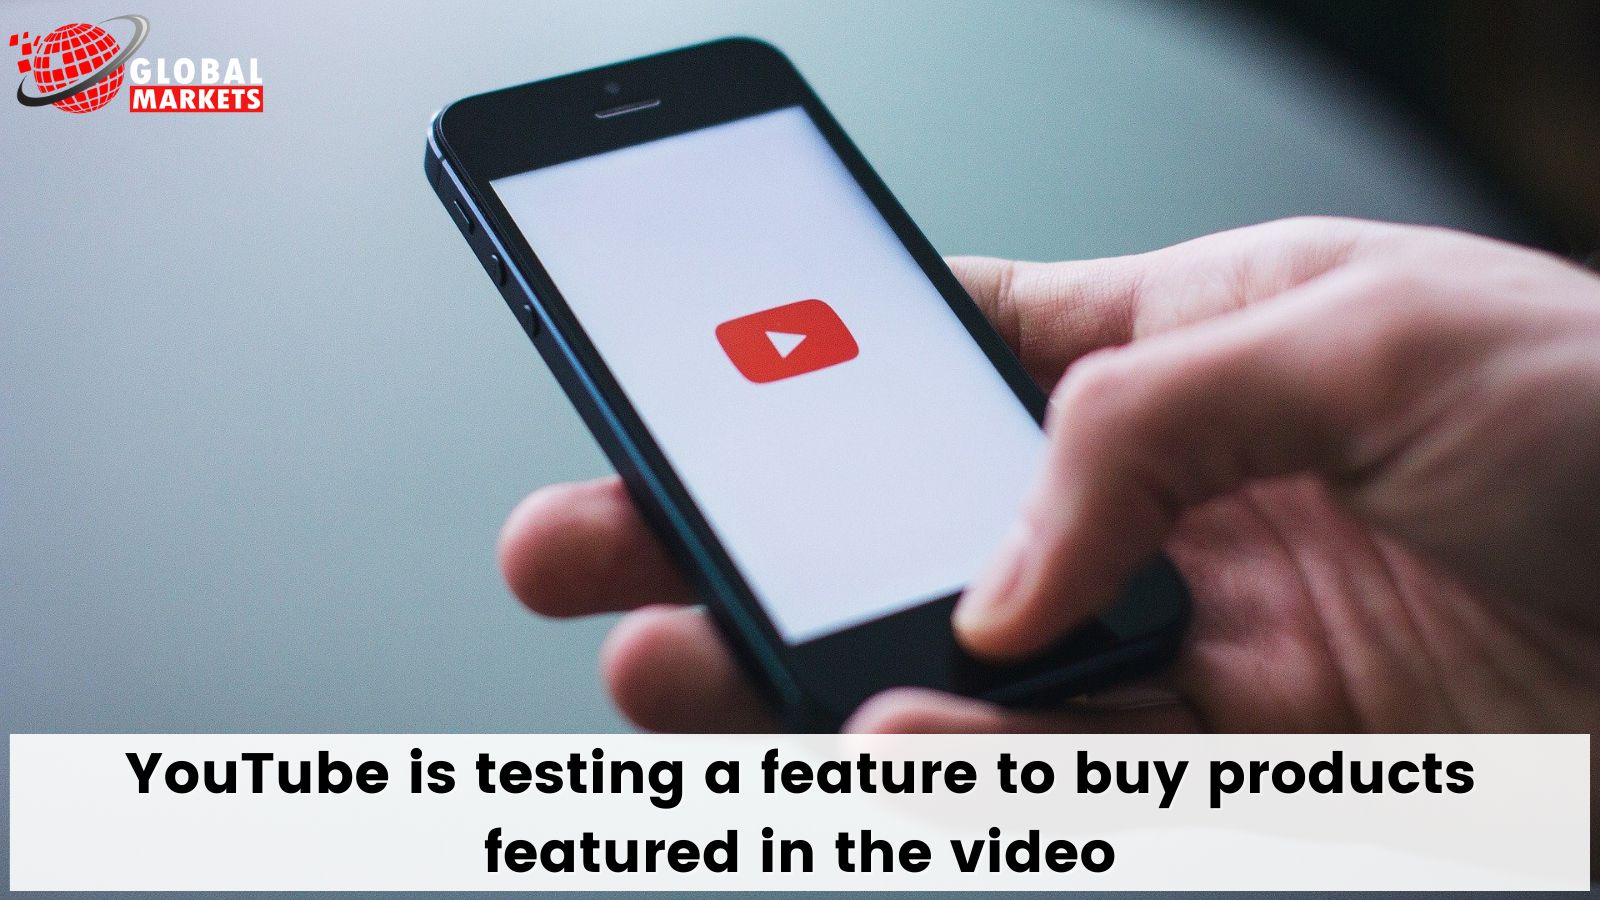 YouTube is testing a feature to buy products featured in the video